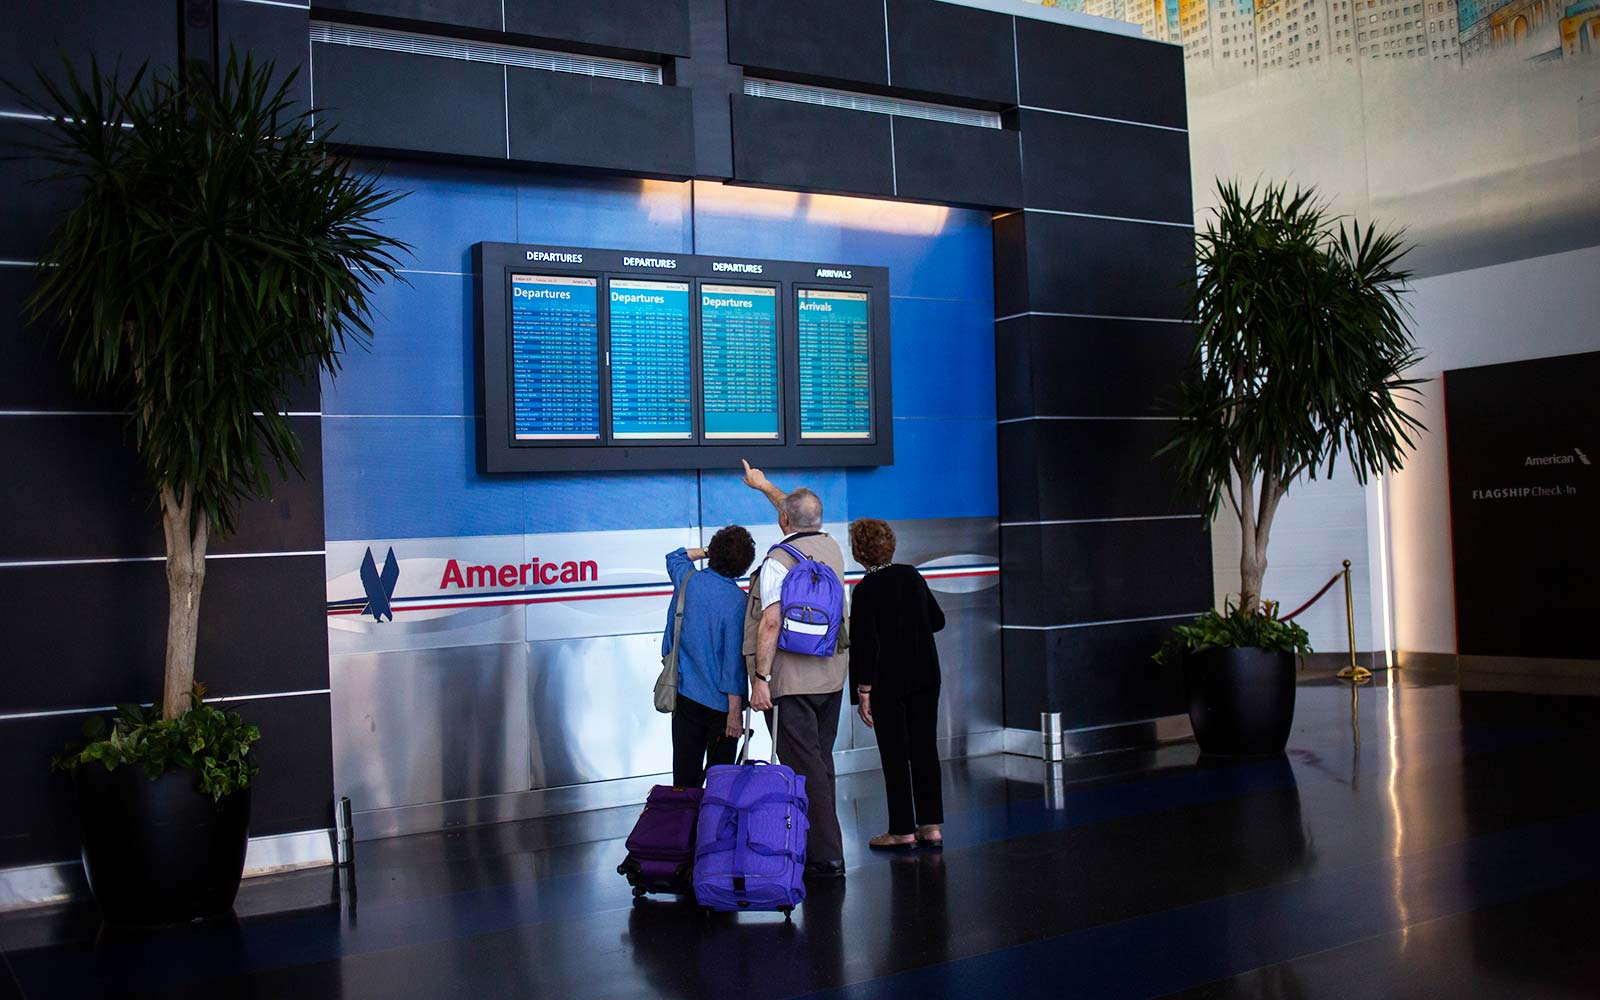 American Airlines/US Airways Terminal at John F. Kennedy Airport New York City